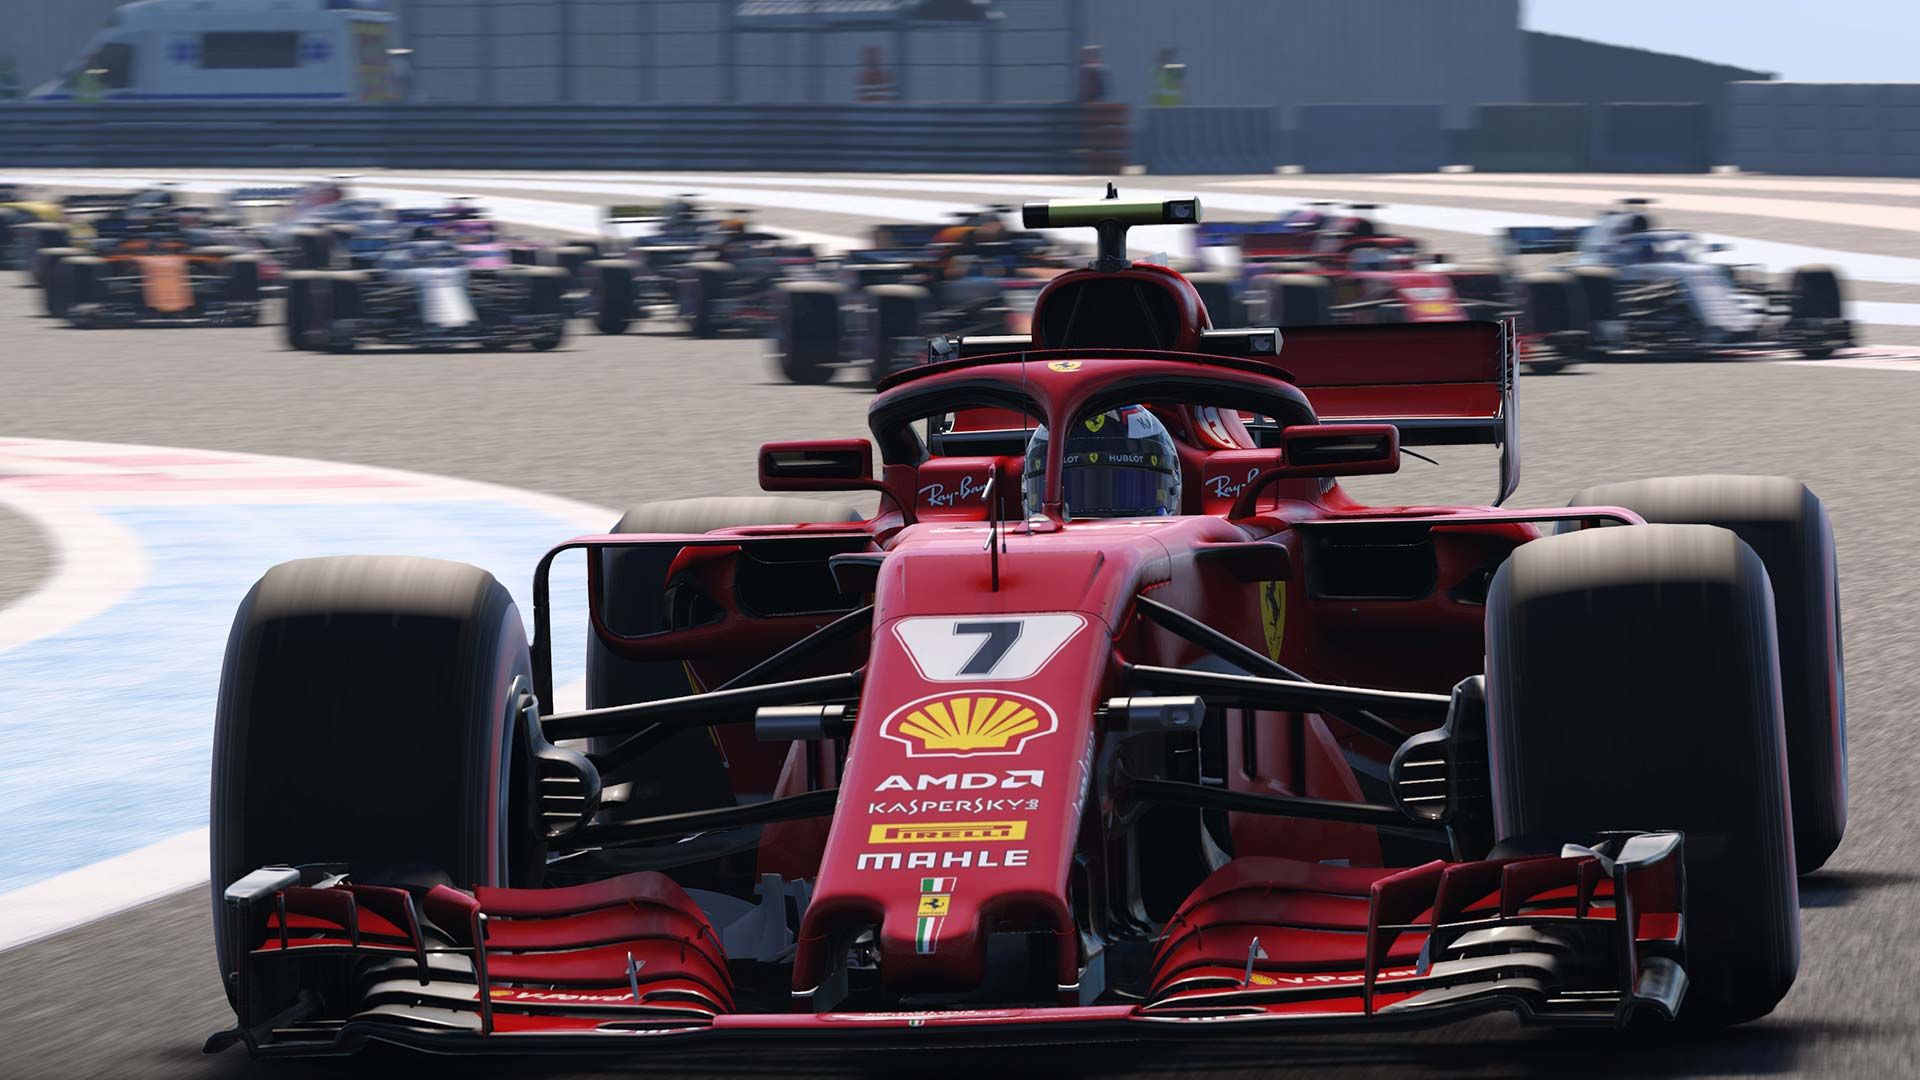 F1 2018 HEADLINE EDITION 🏁 | REG. FREE | MULTIL